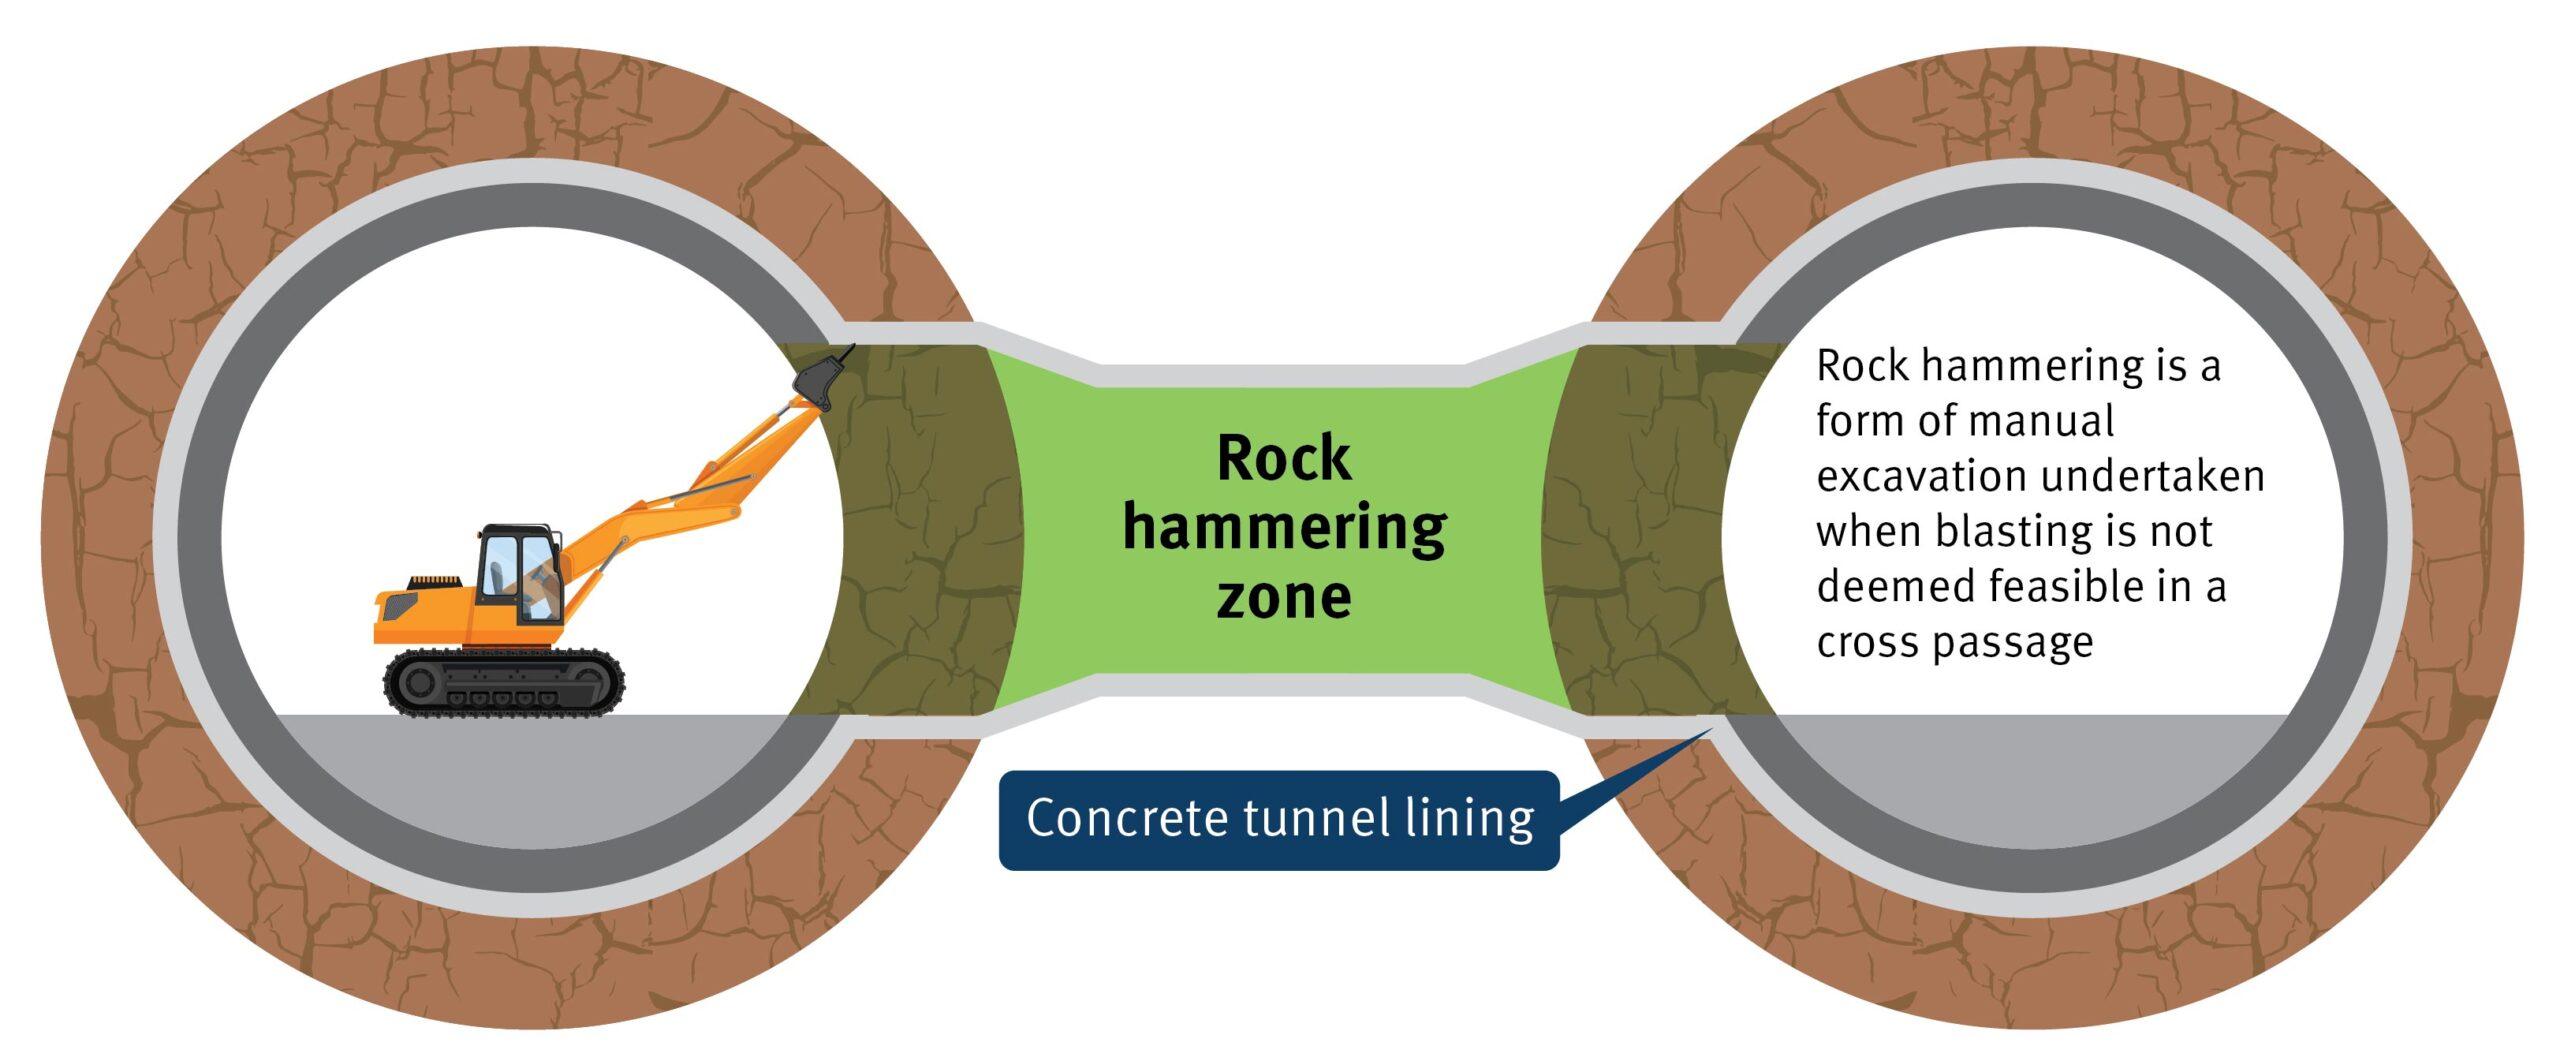 Graphic showing how rock hammers excavate cross passages